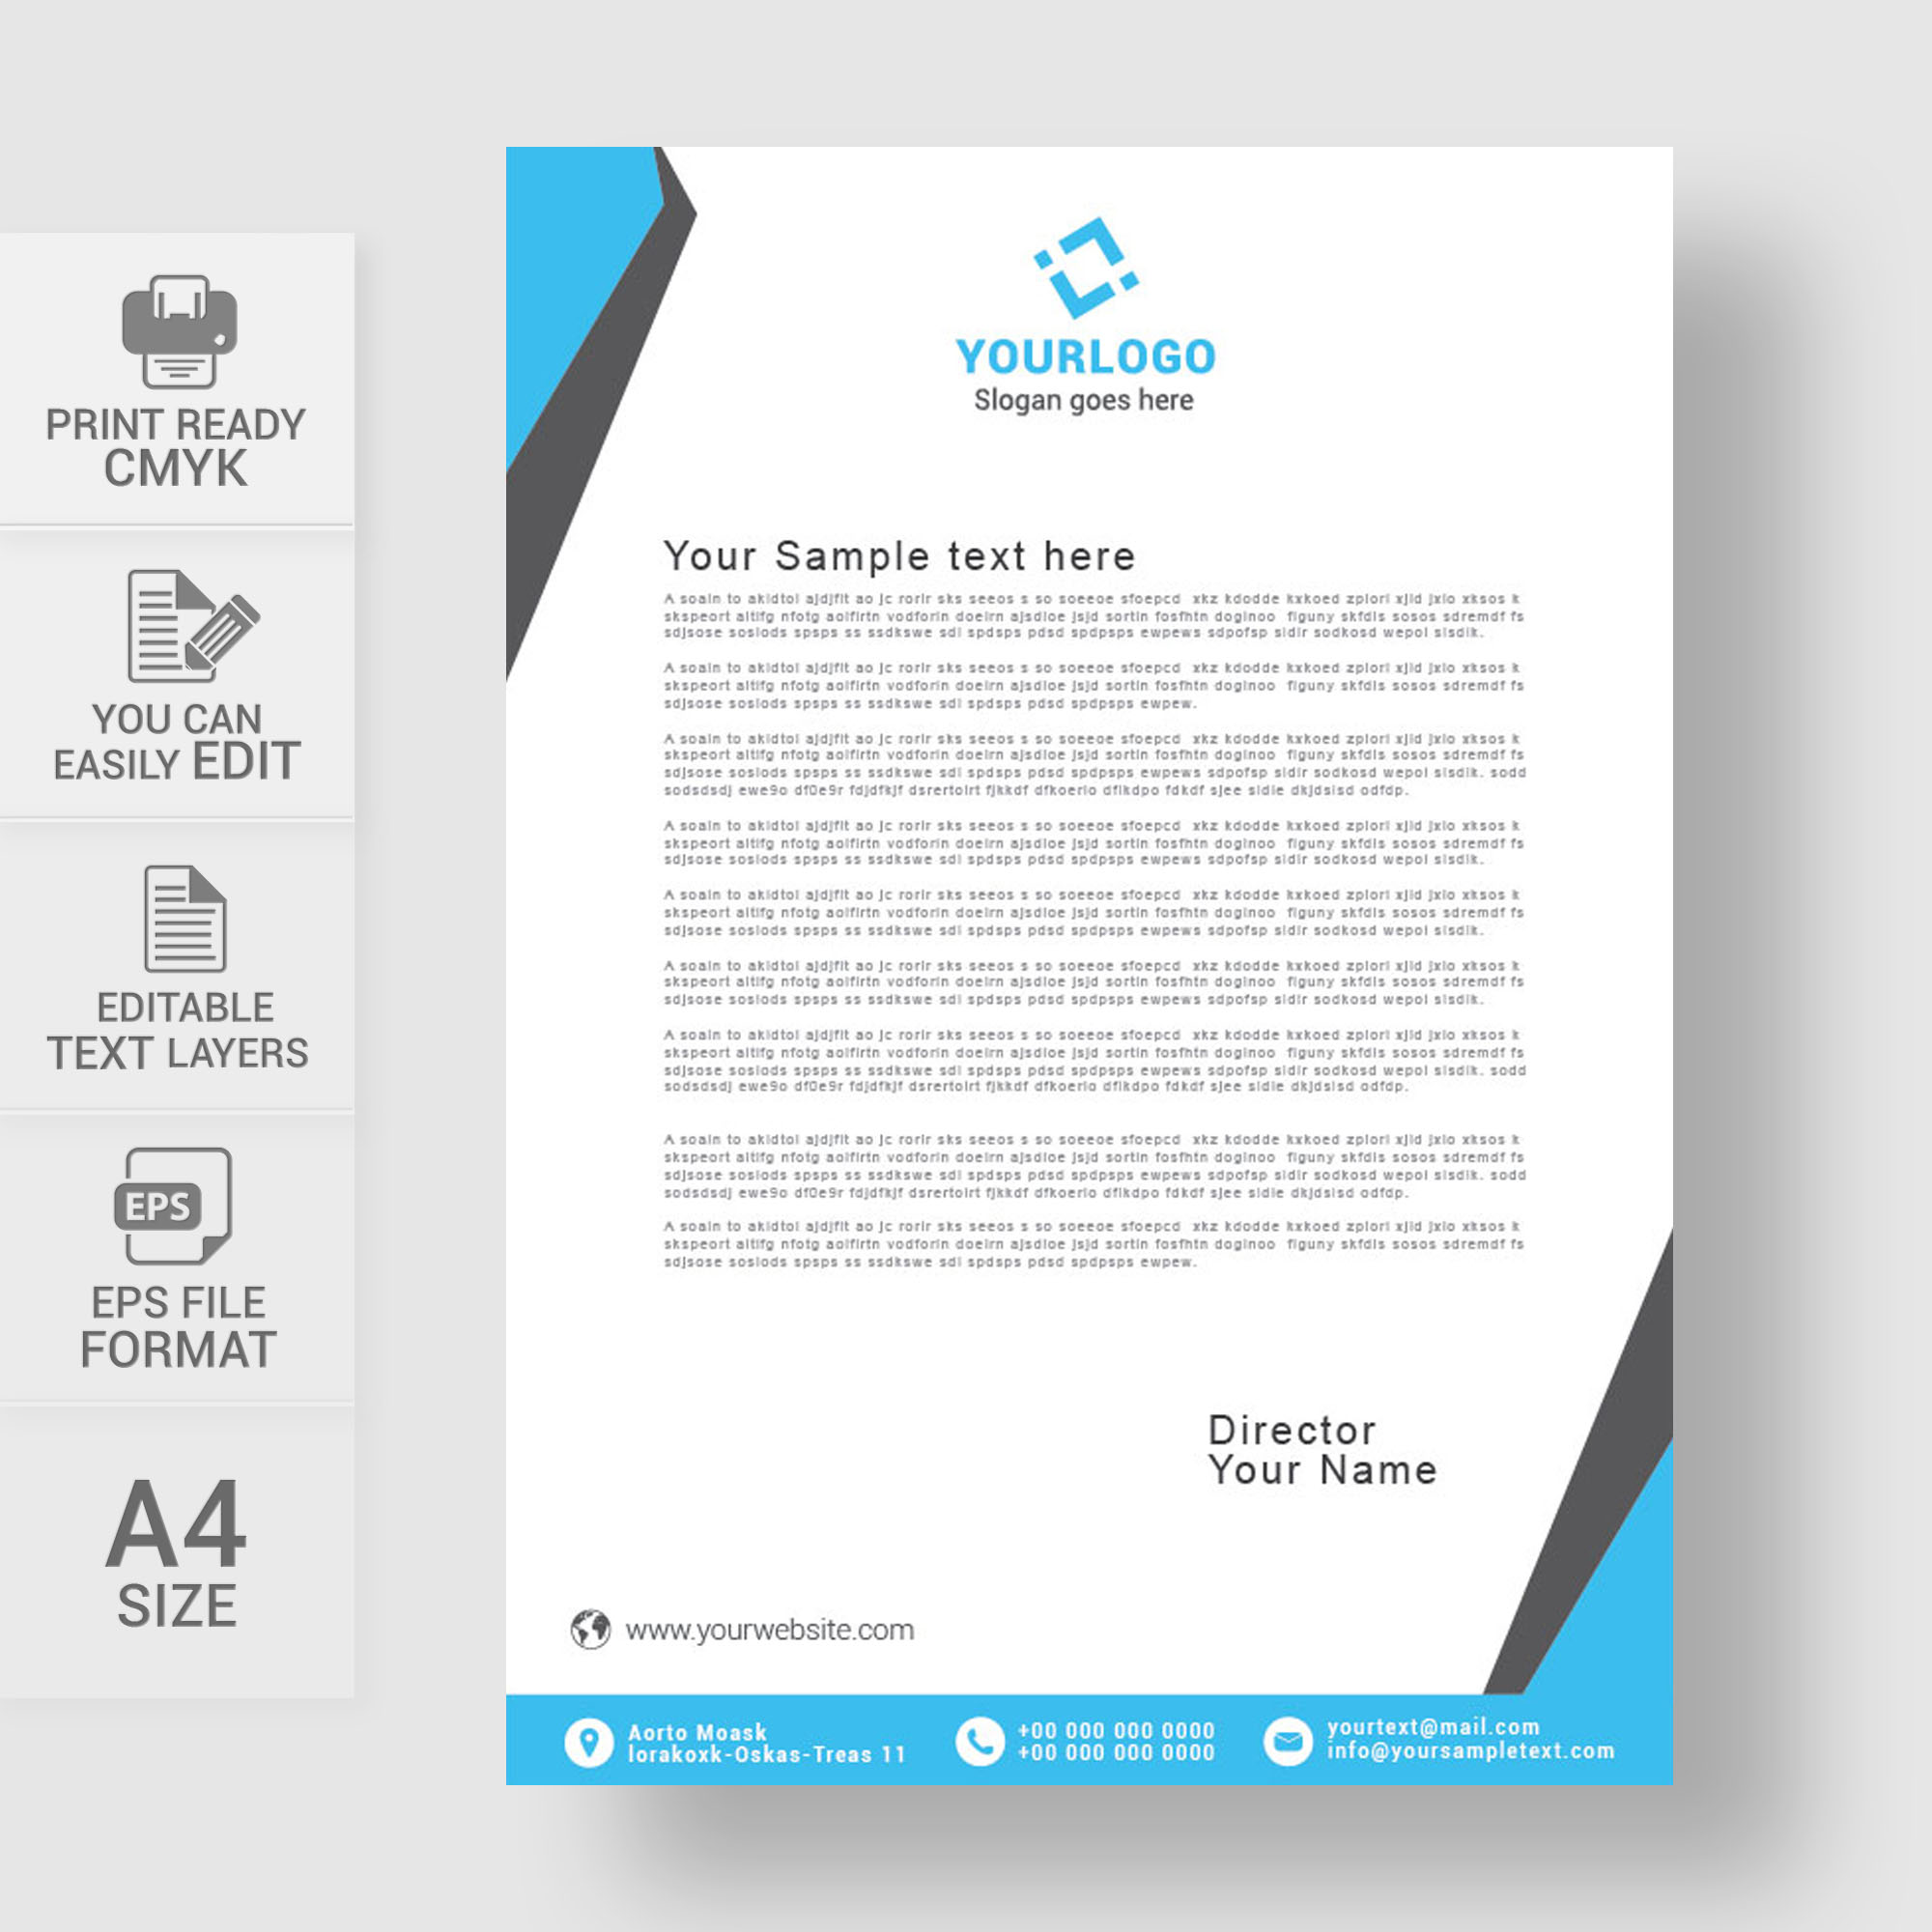 Free business letterhead design templates juvecenitdelacabrera free business letterhead design templates spiritdancerdesigns Gallery